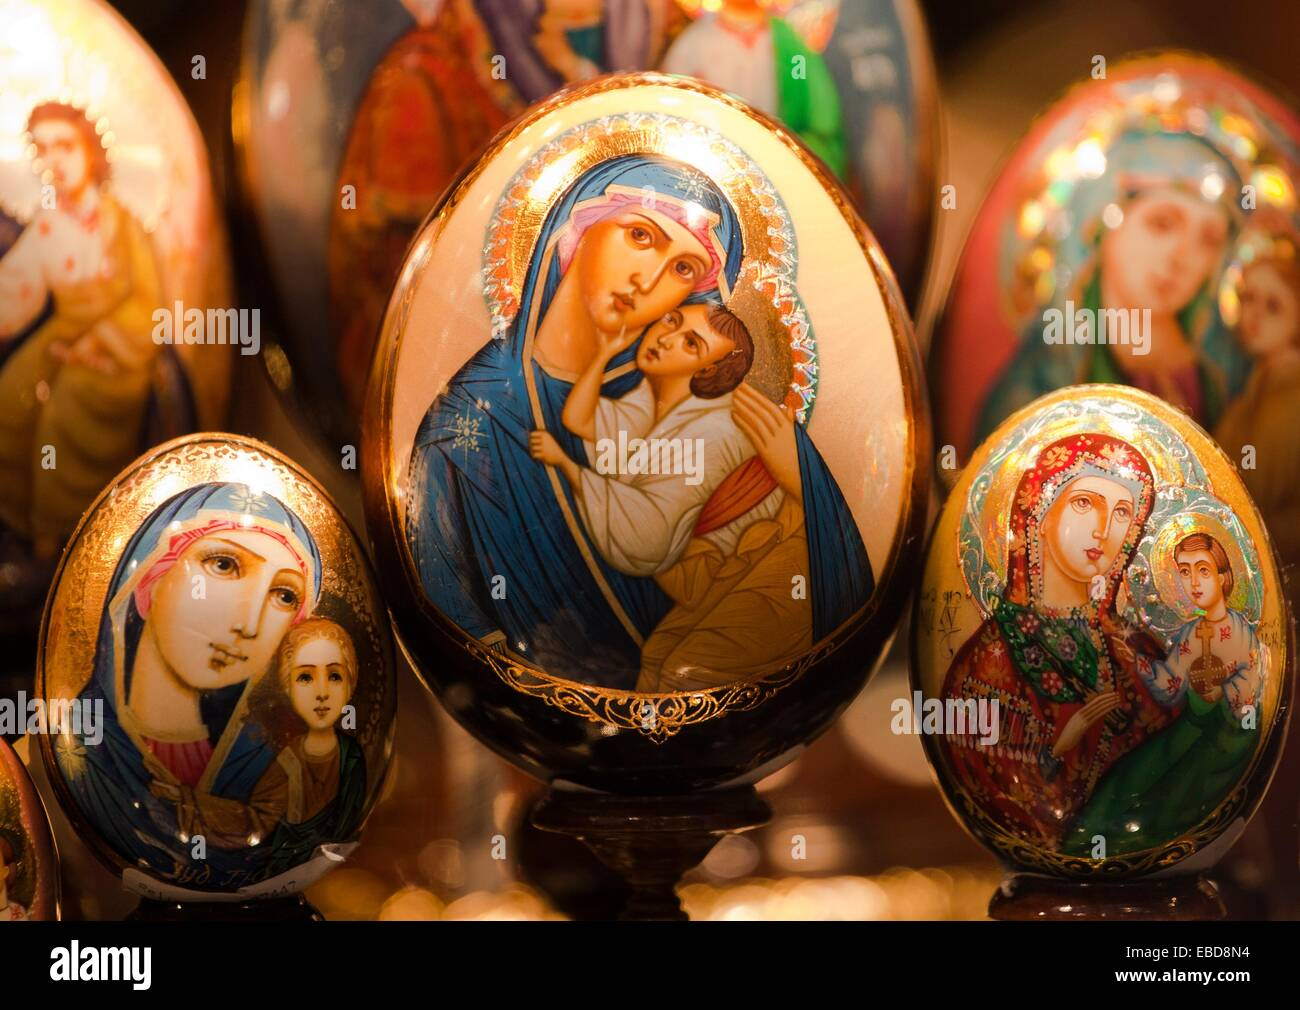 Virgin Mary and Child Jesus, painted eggs decorated with religious  patterns, Mala Strana,